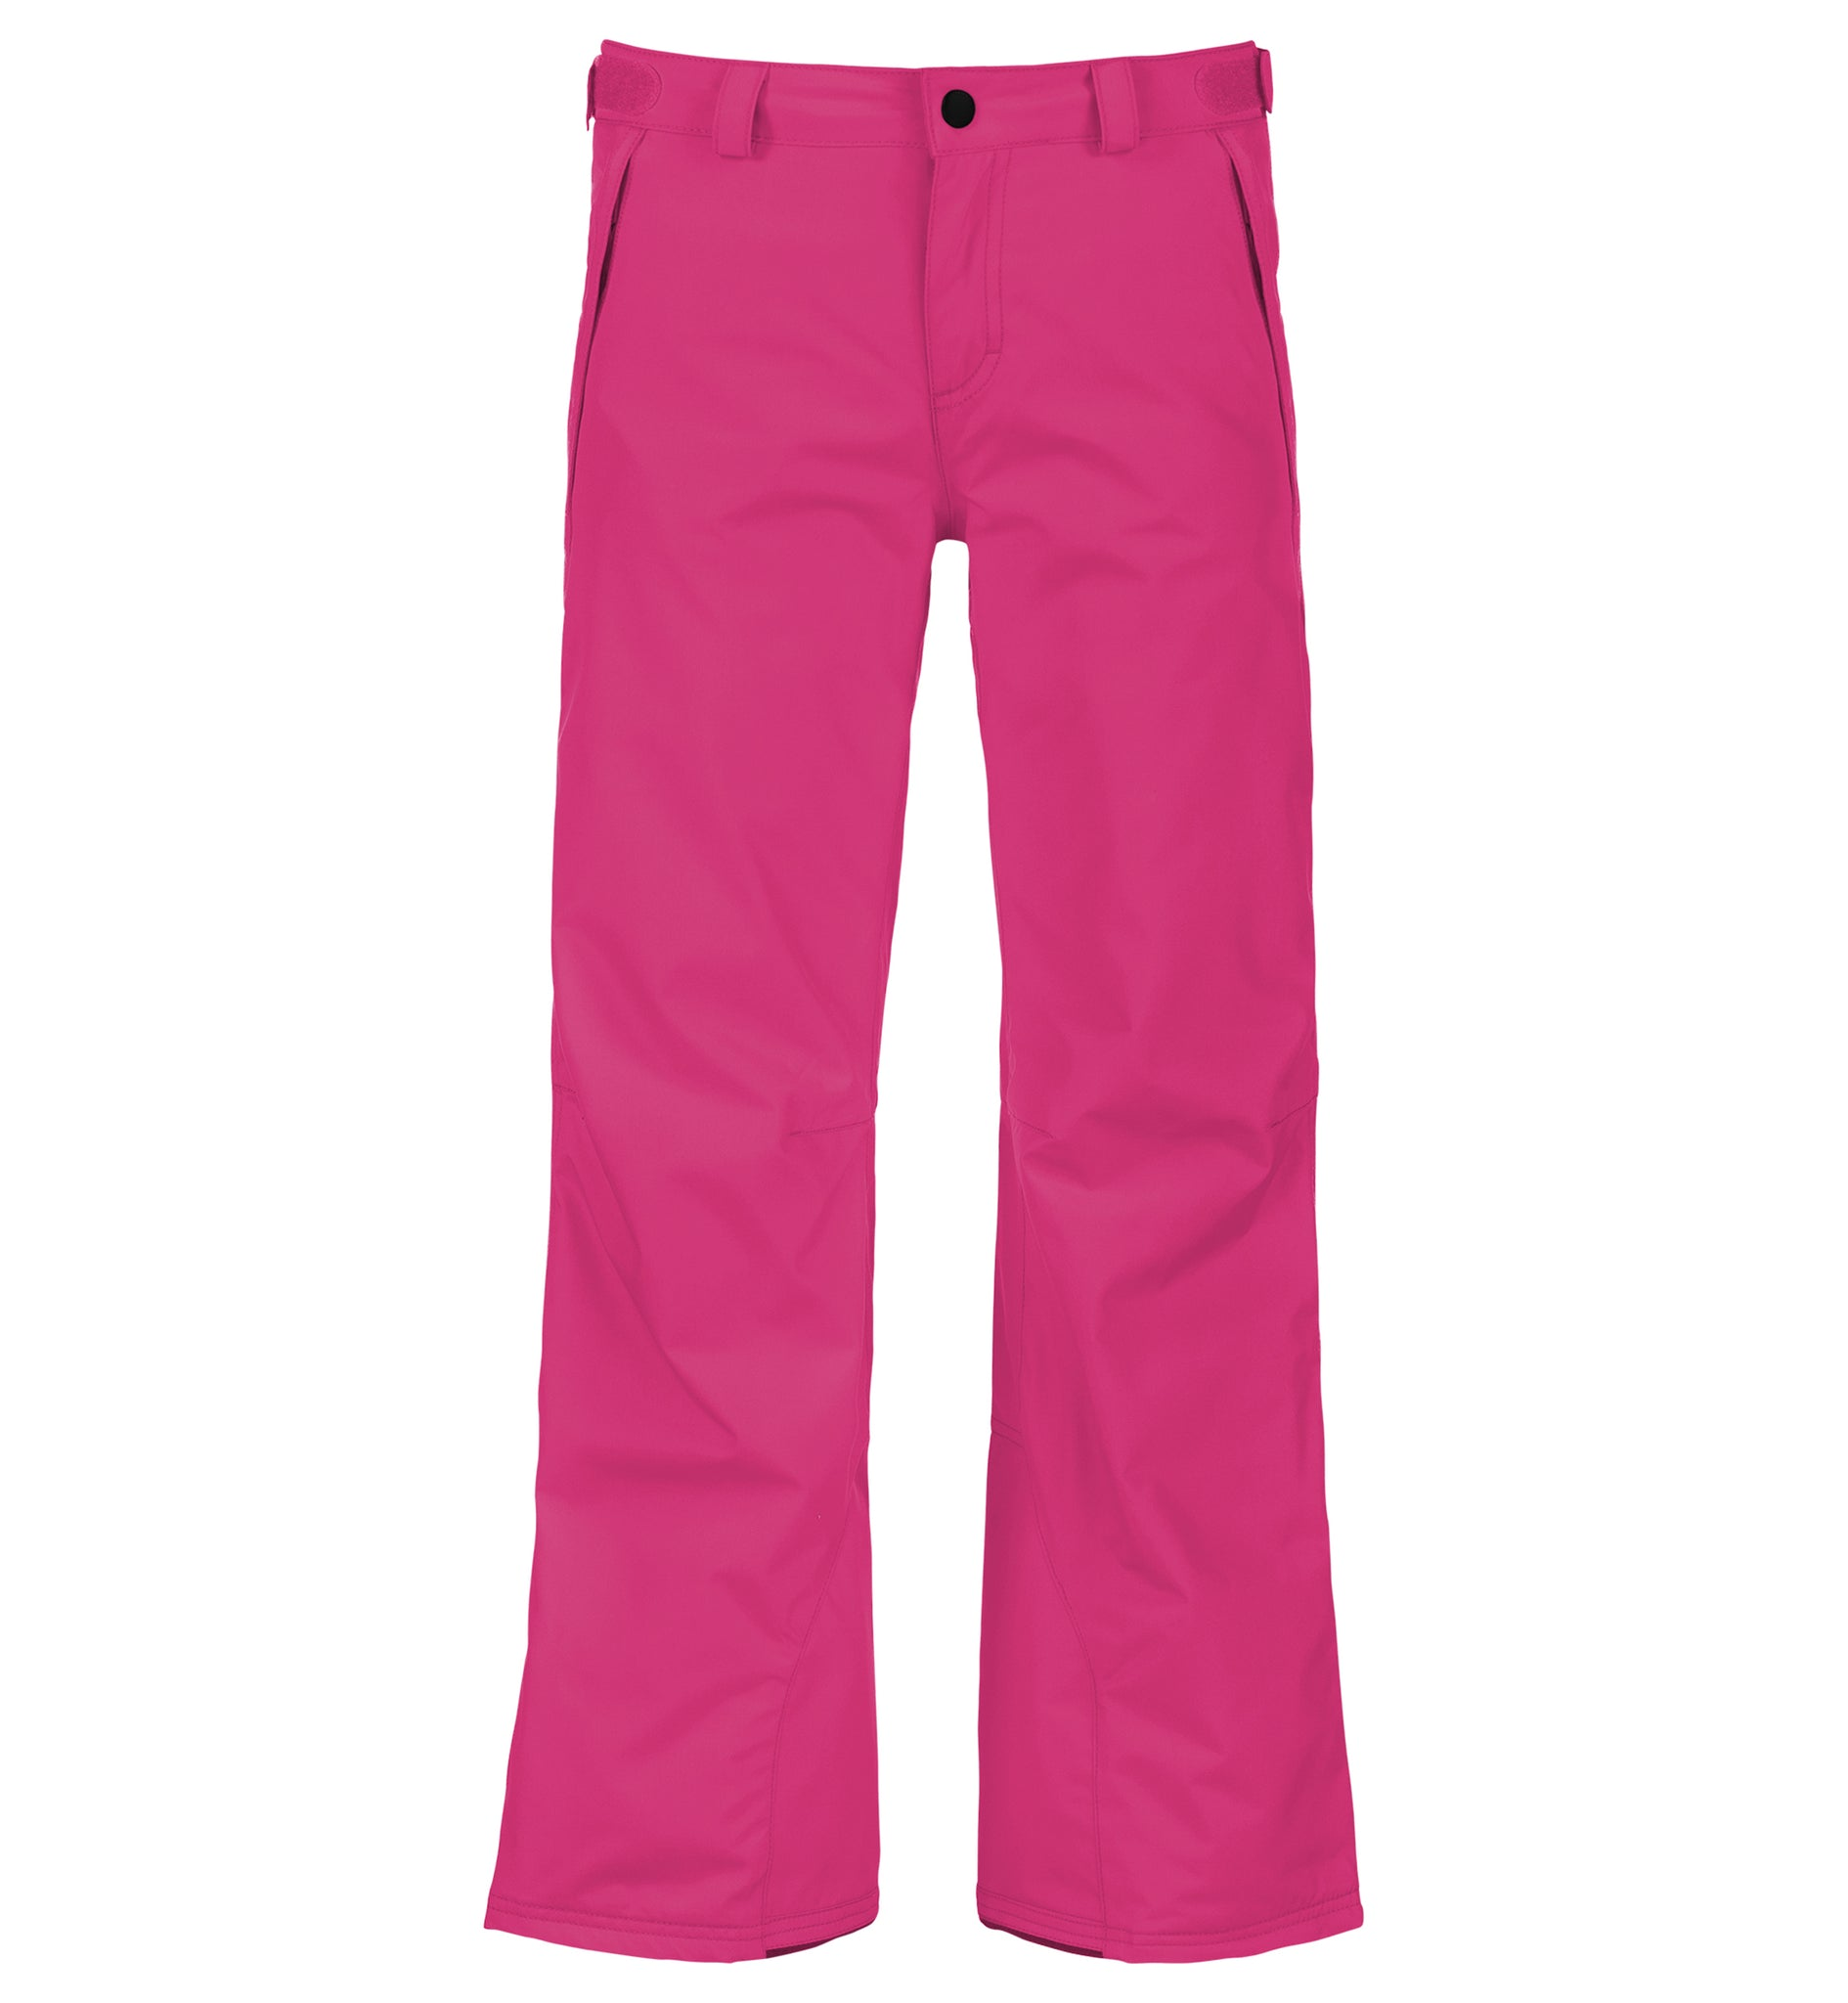 Girls Charm Snow Pants - Hot Pink | O'Neill